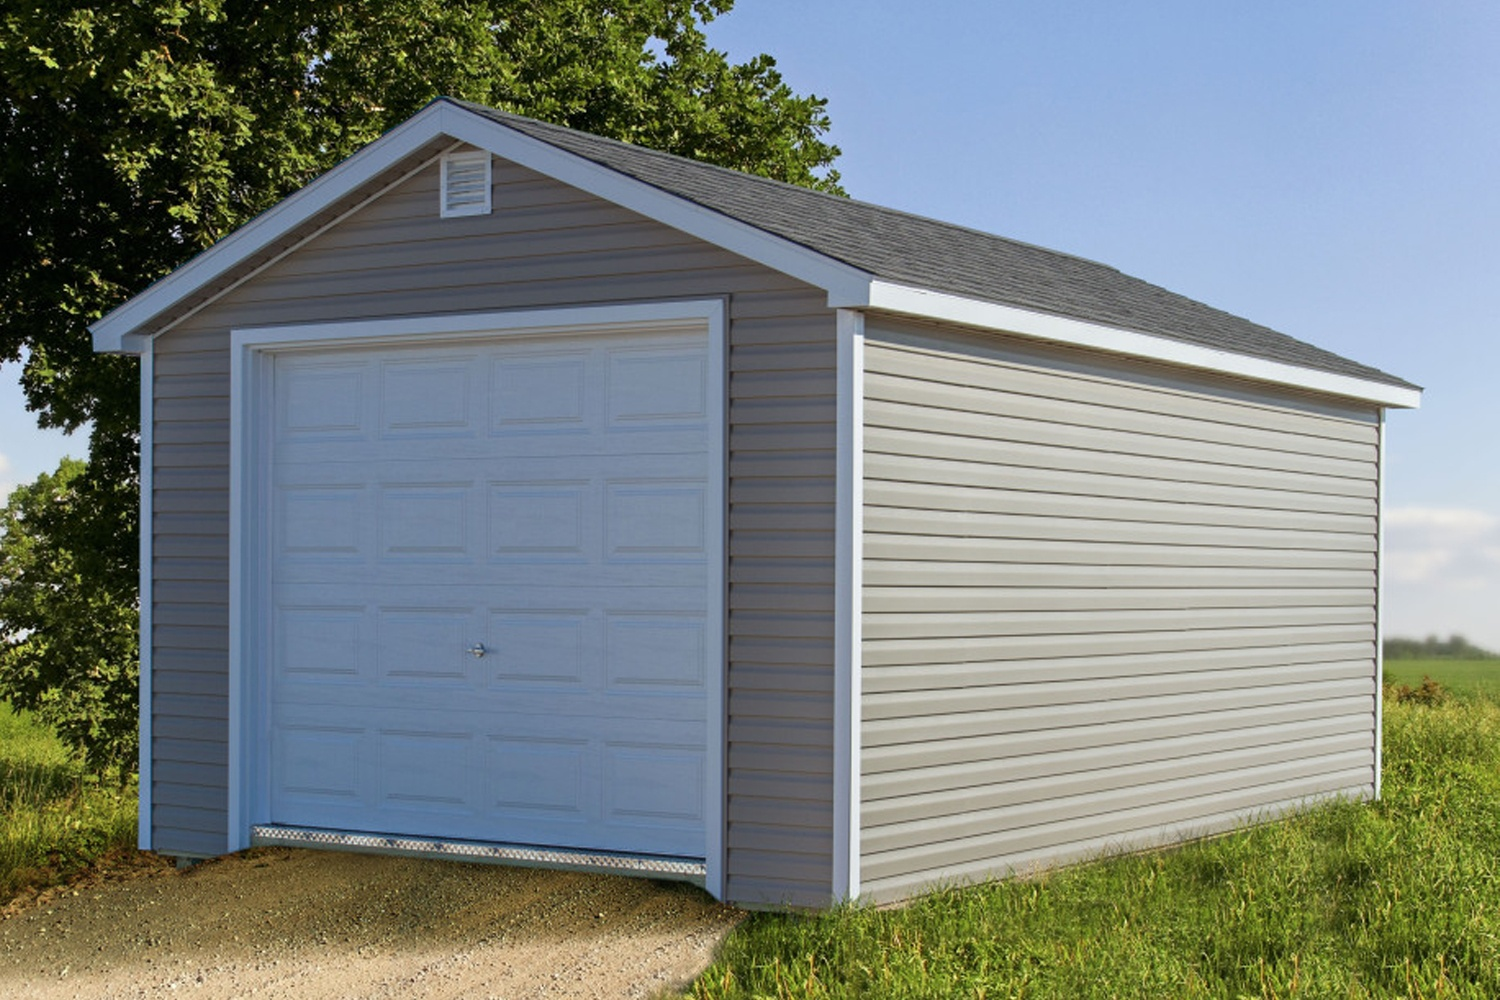 Storage shed kits for sale prefab metal building kits for Metal house kits for sale